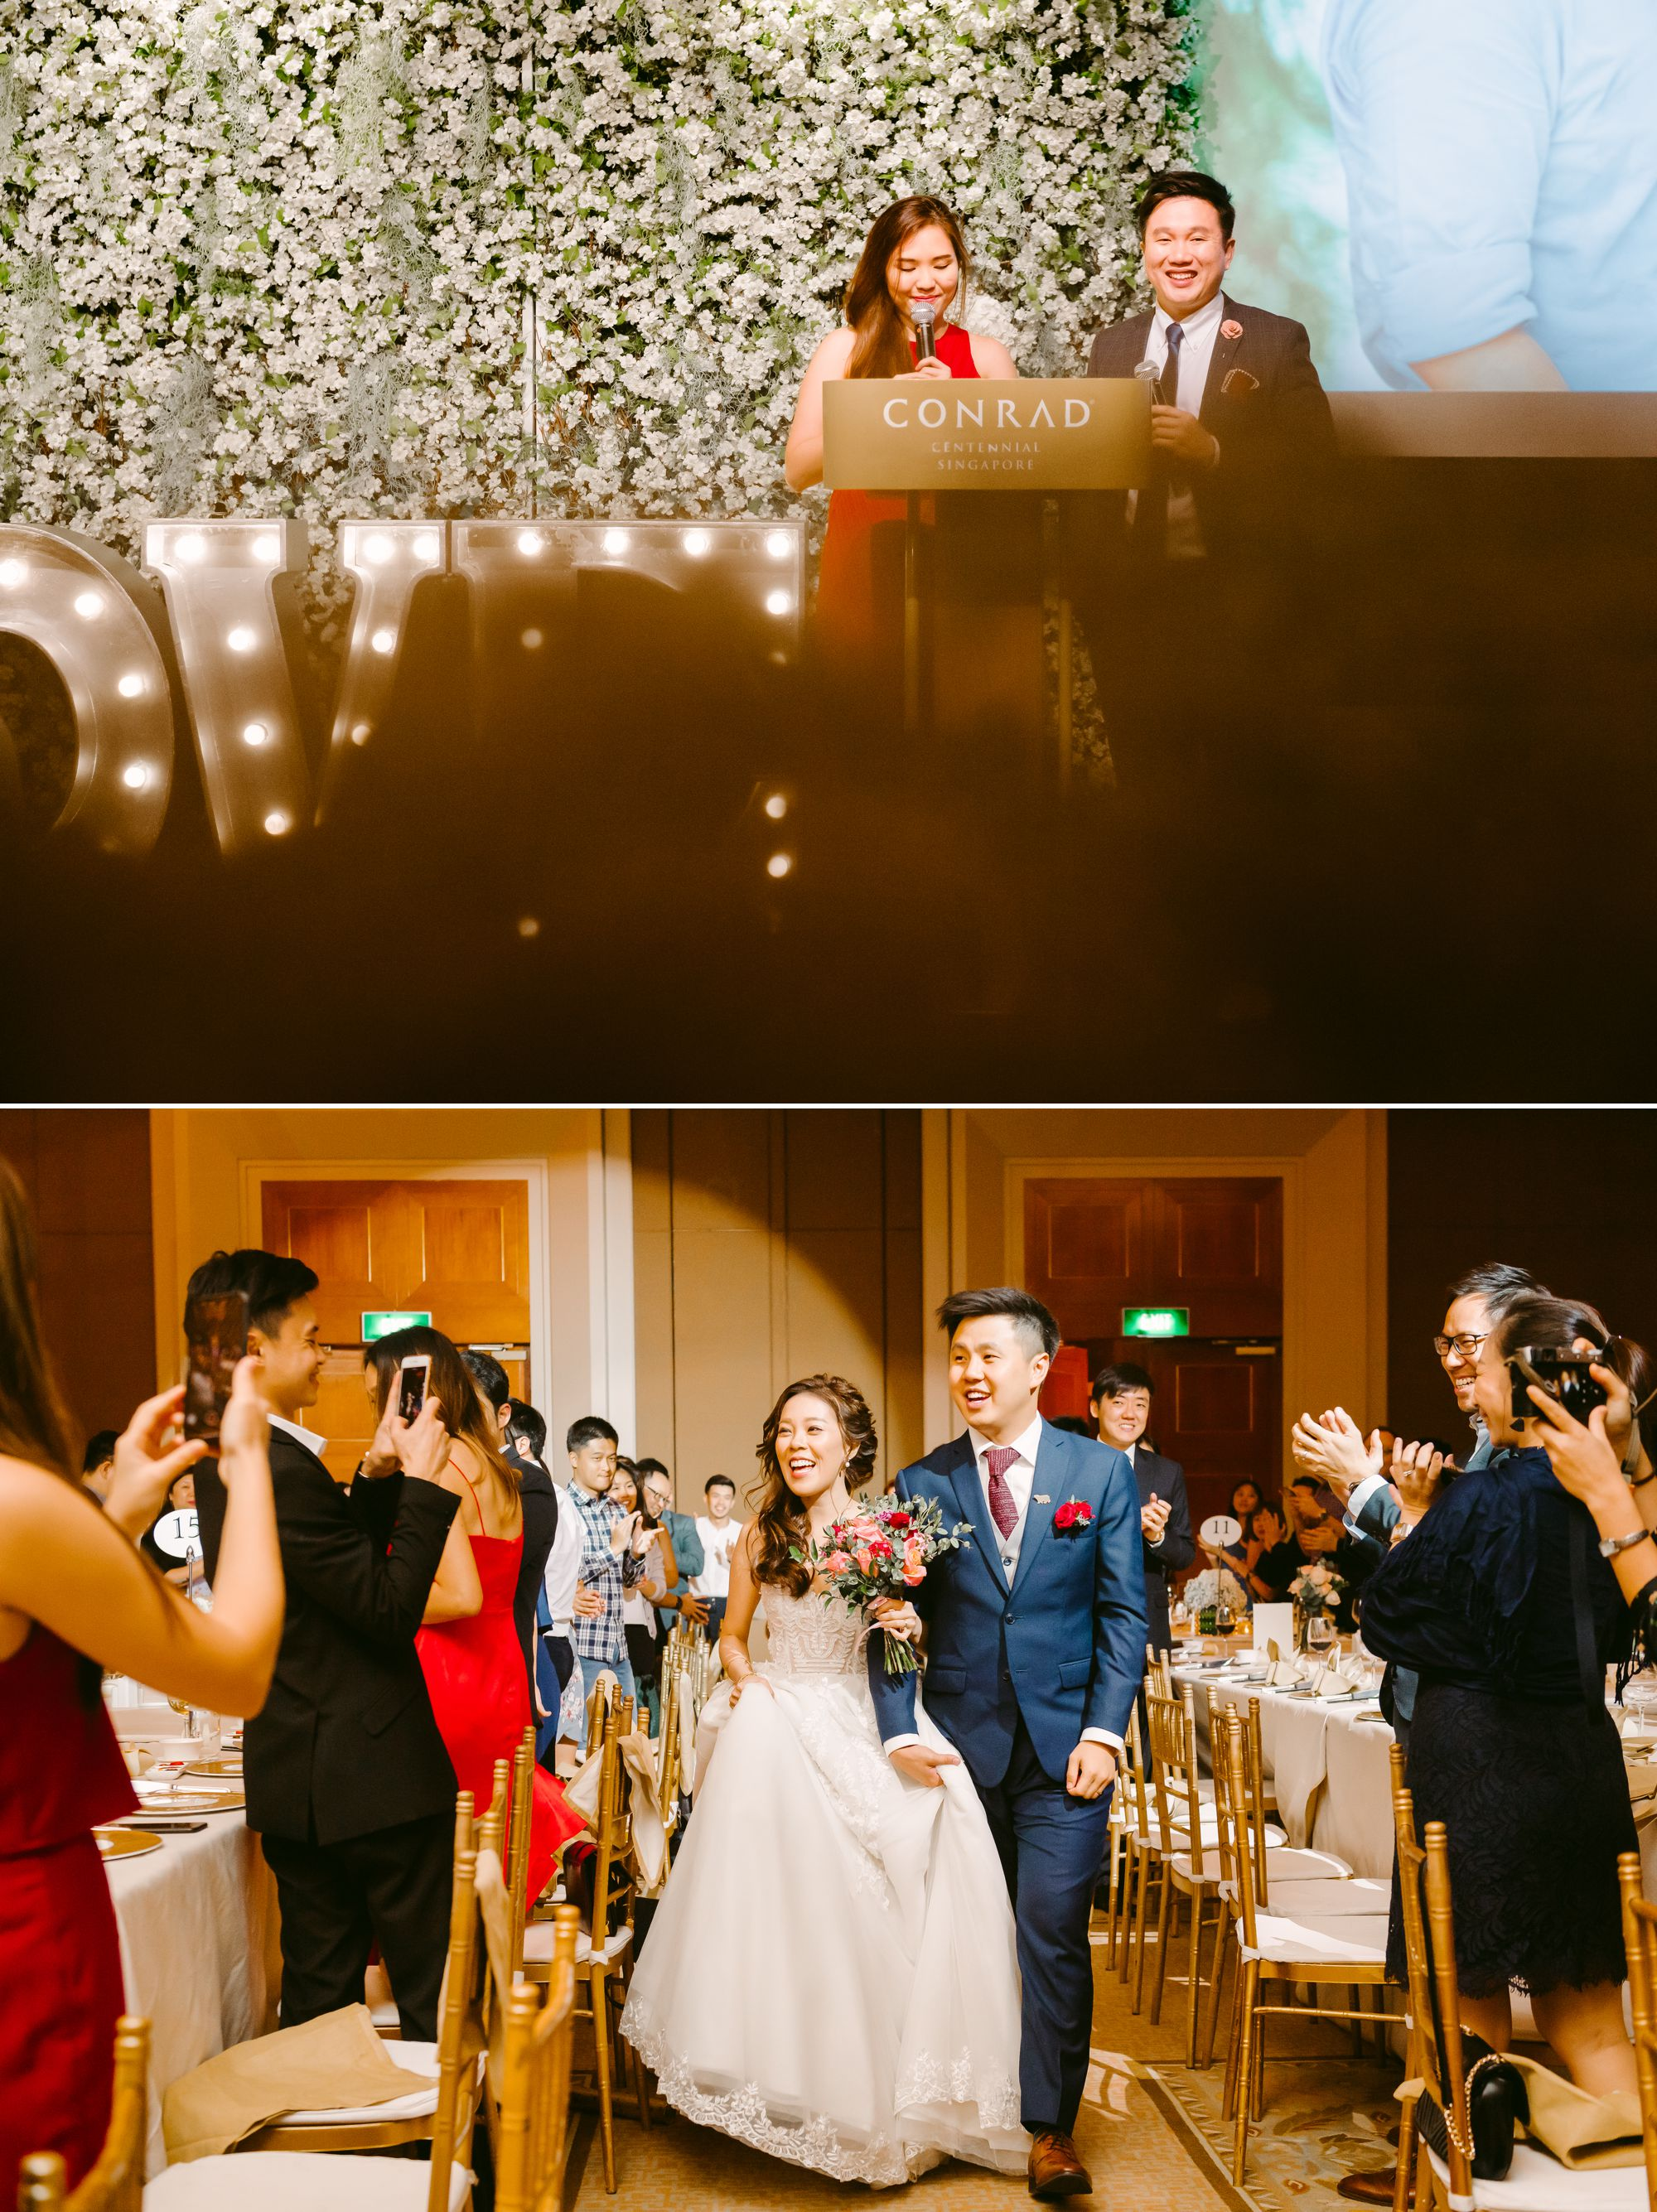 conrad_wedding_Singapore_ 34.jpg